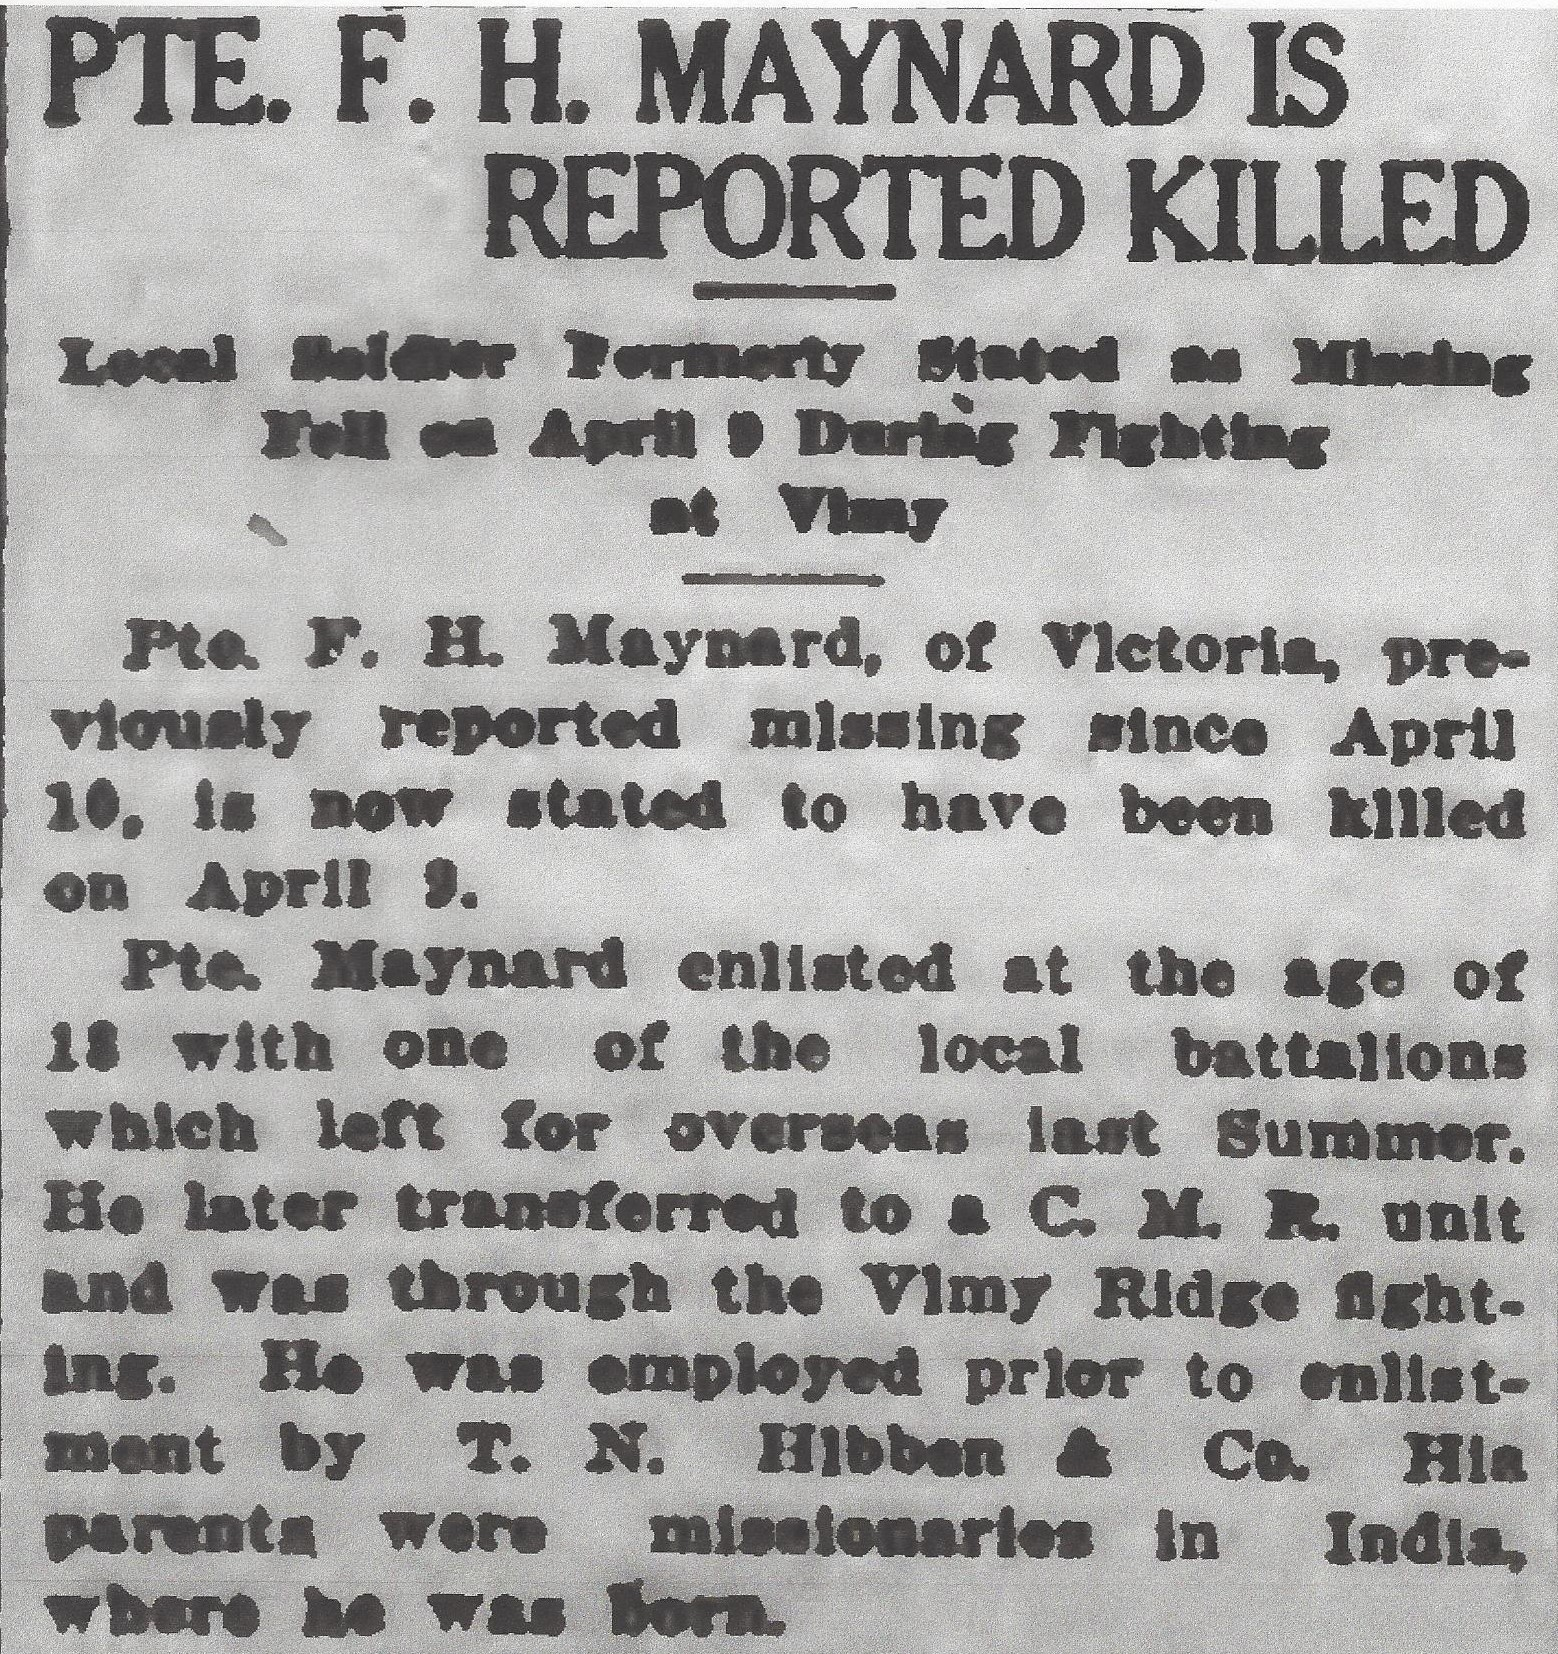 Newspaper clipping – From the Daily Colonist of May 3, 1917. Image taken from web address of http://archive.org/stream/dailycolonist59y124uvic#page/n0/mode/1up